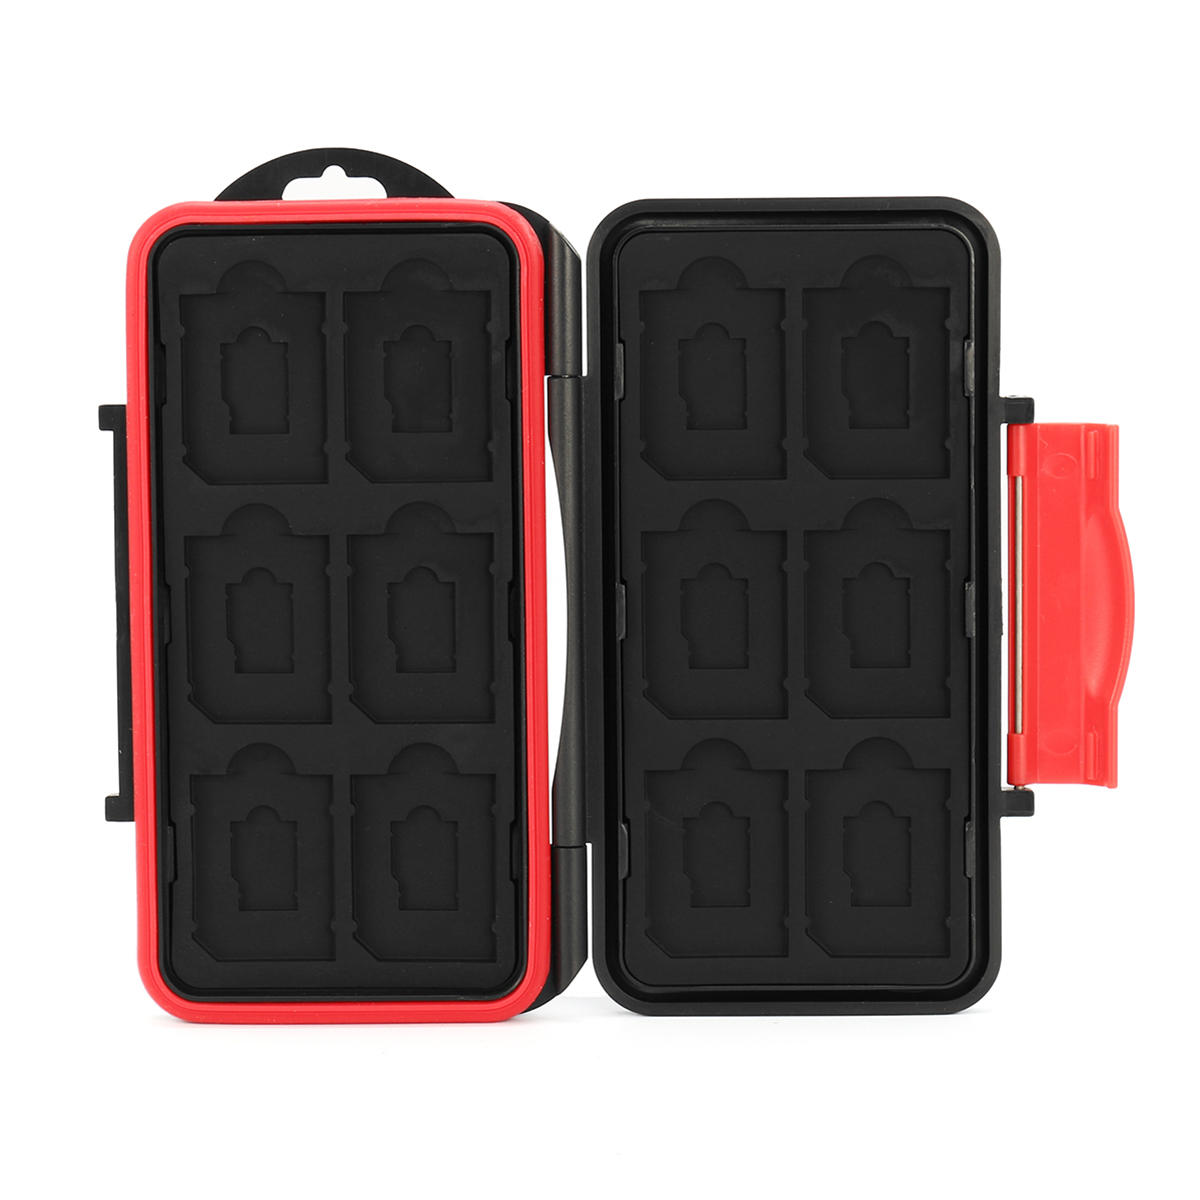 Anti-Shock Memory Card Case Storage Holder Box for 12xSD 12xTF Card